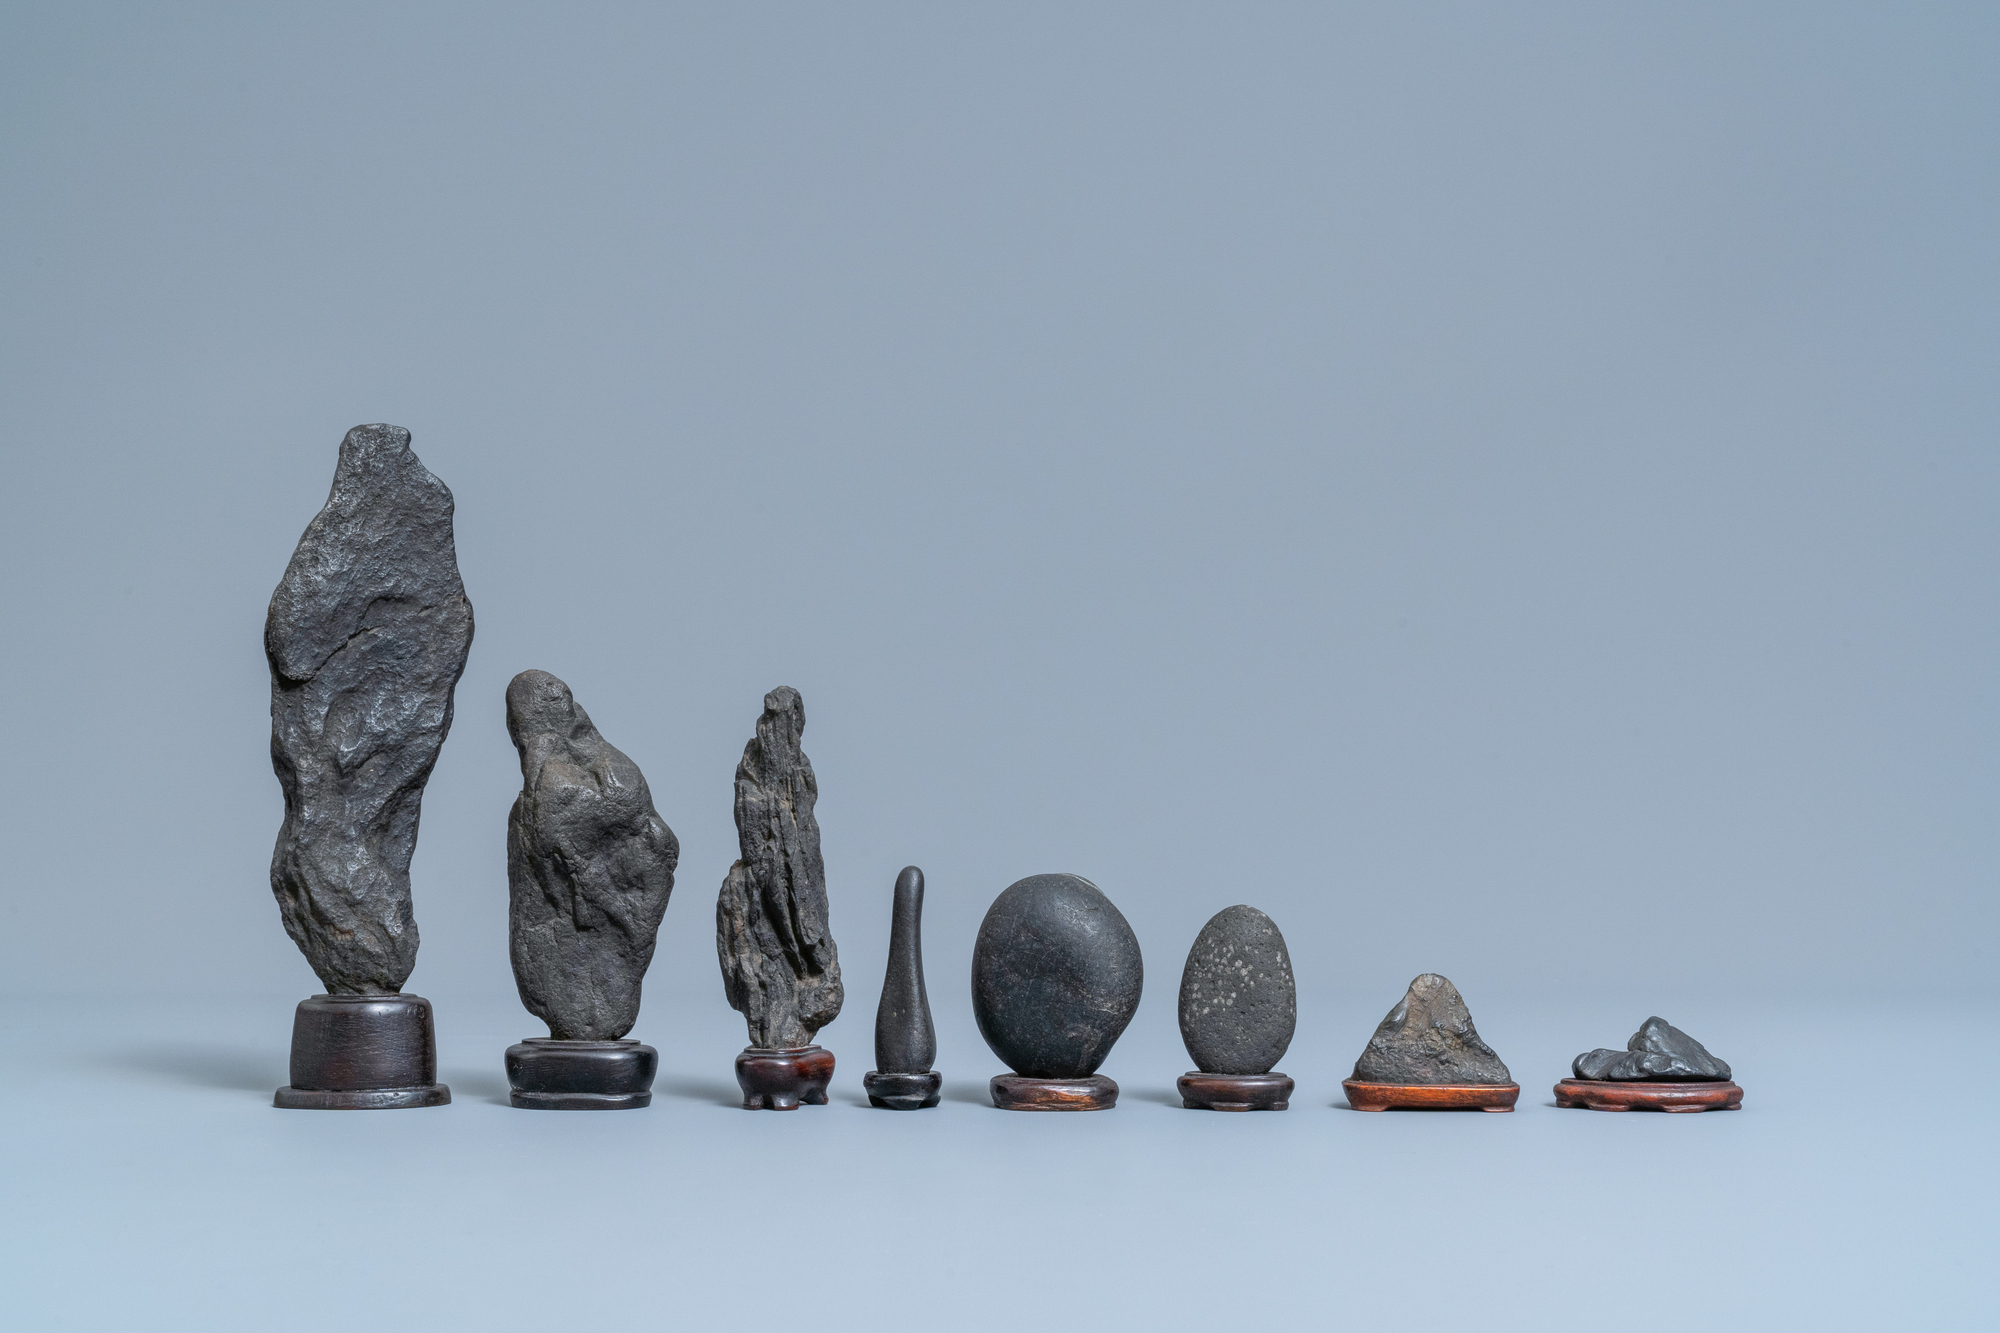 Eight Chinese scholar's rocks on wooden stands, 19/20th C. - Image 4 of 7